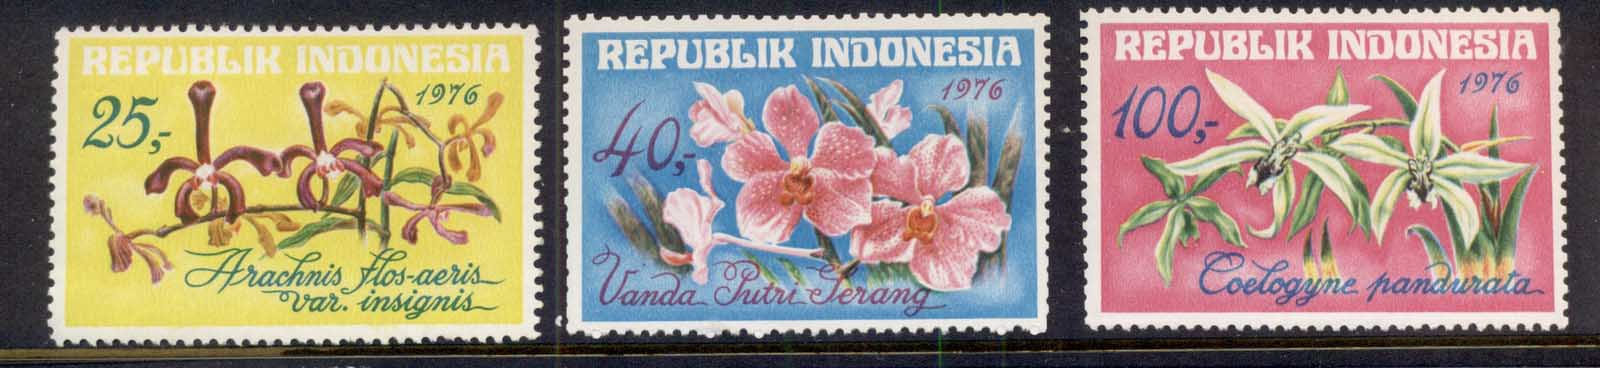 Indonesia 1976 Flowers, Orchids MUH